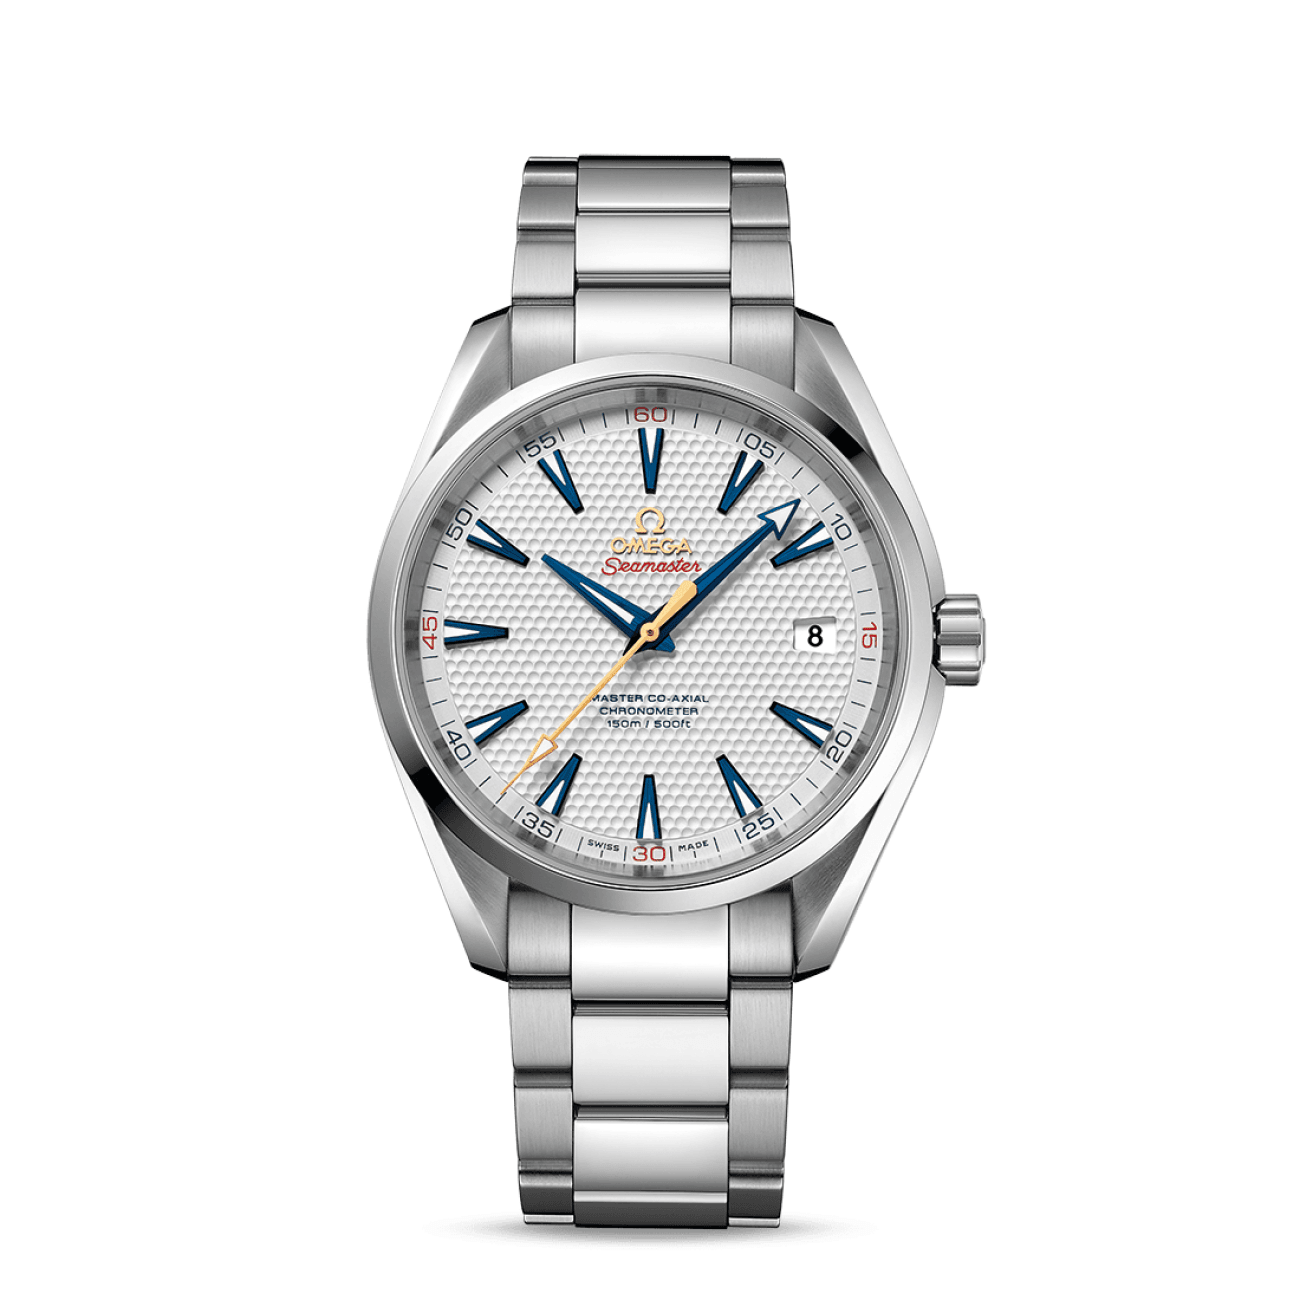 Omega Watches - Aqua Terra 150M Omega Master Co-Axial 41.5 Mm | Manfredi Jewels